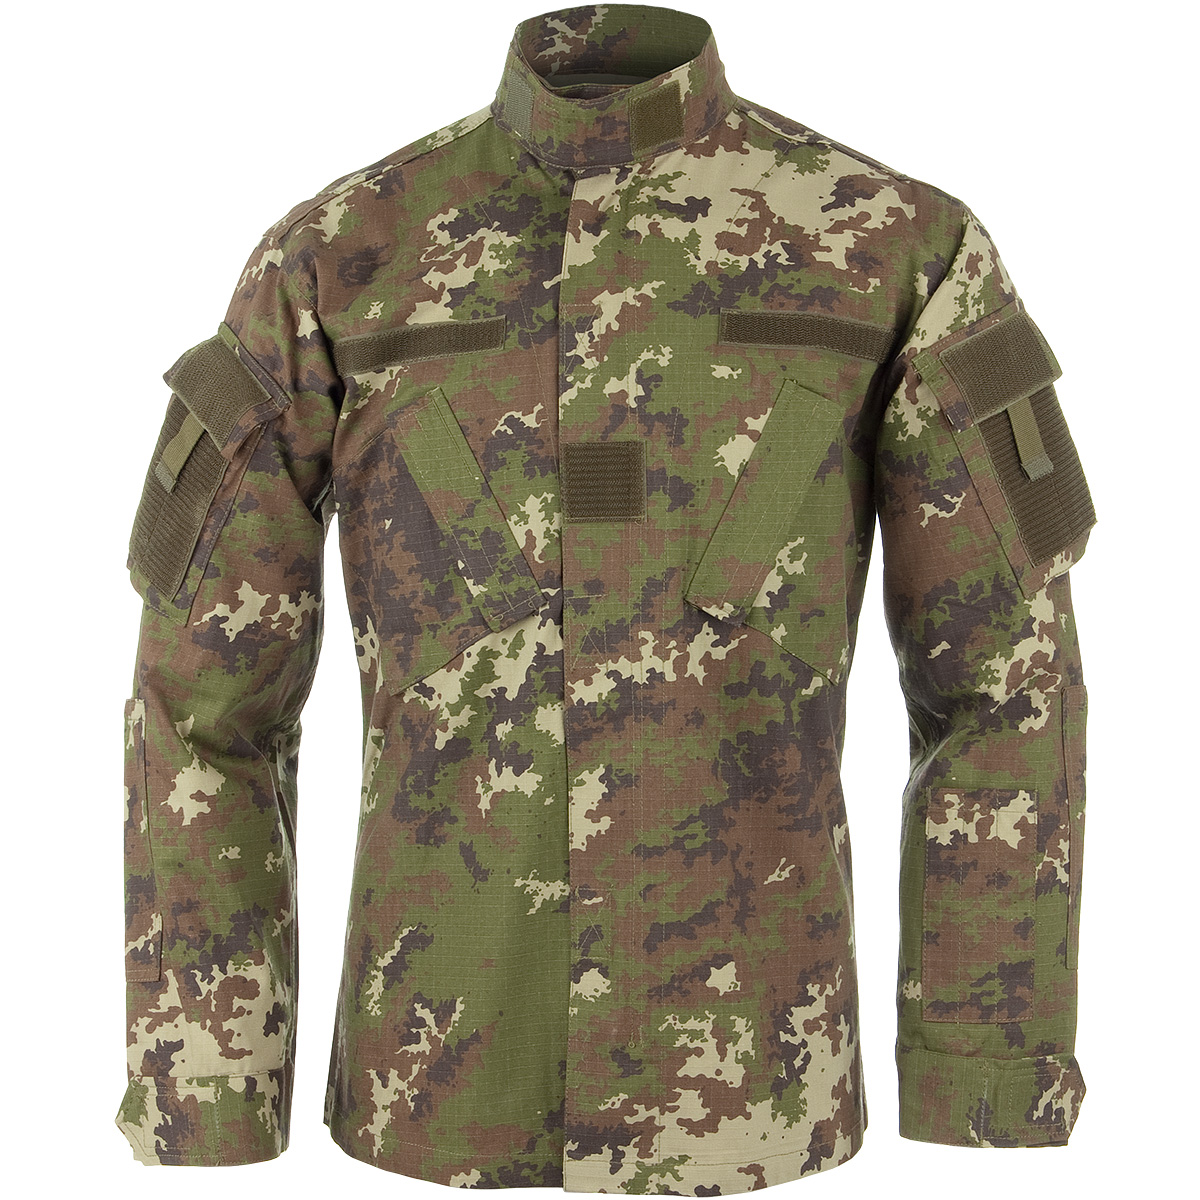 Viper Tactical Combat Shirt Utility Ripstop Airsoft Military Free UK Delivery